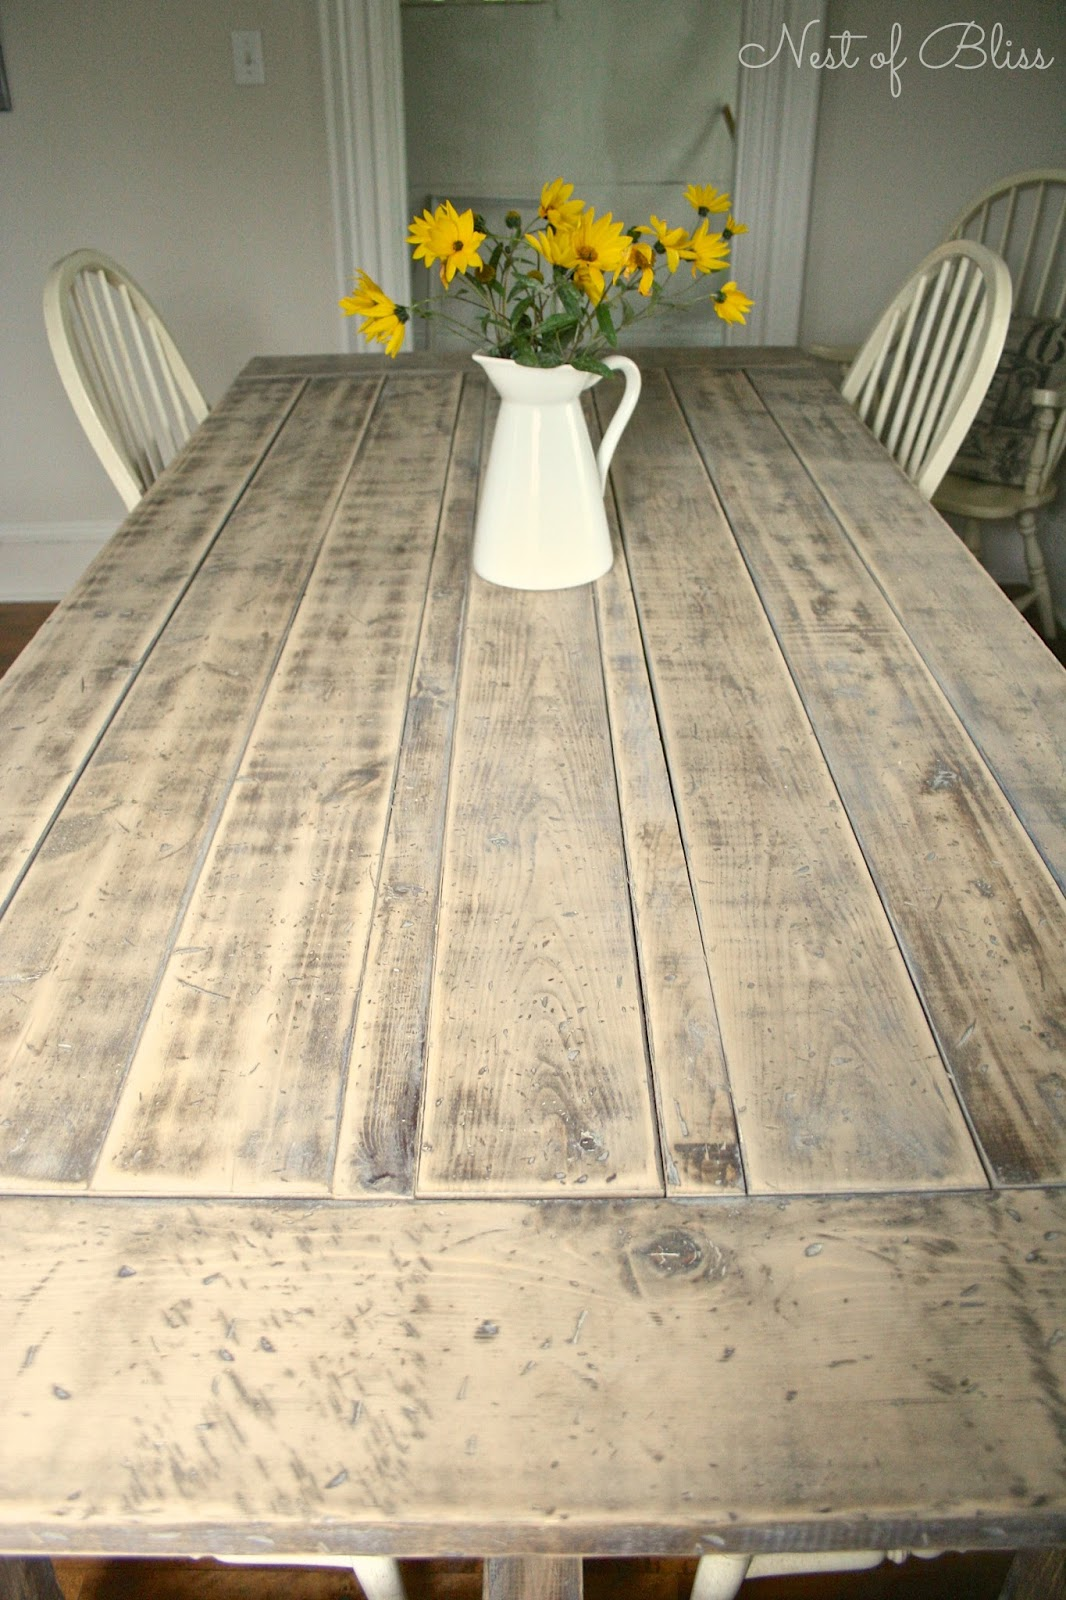 Diy rustic farmhouse table makeover nest of bliss